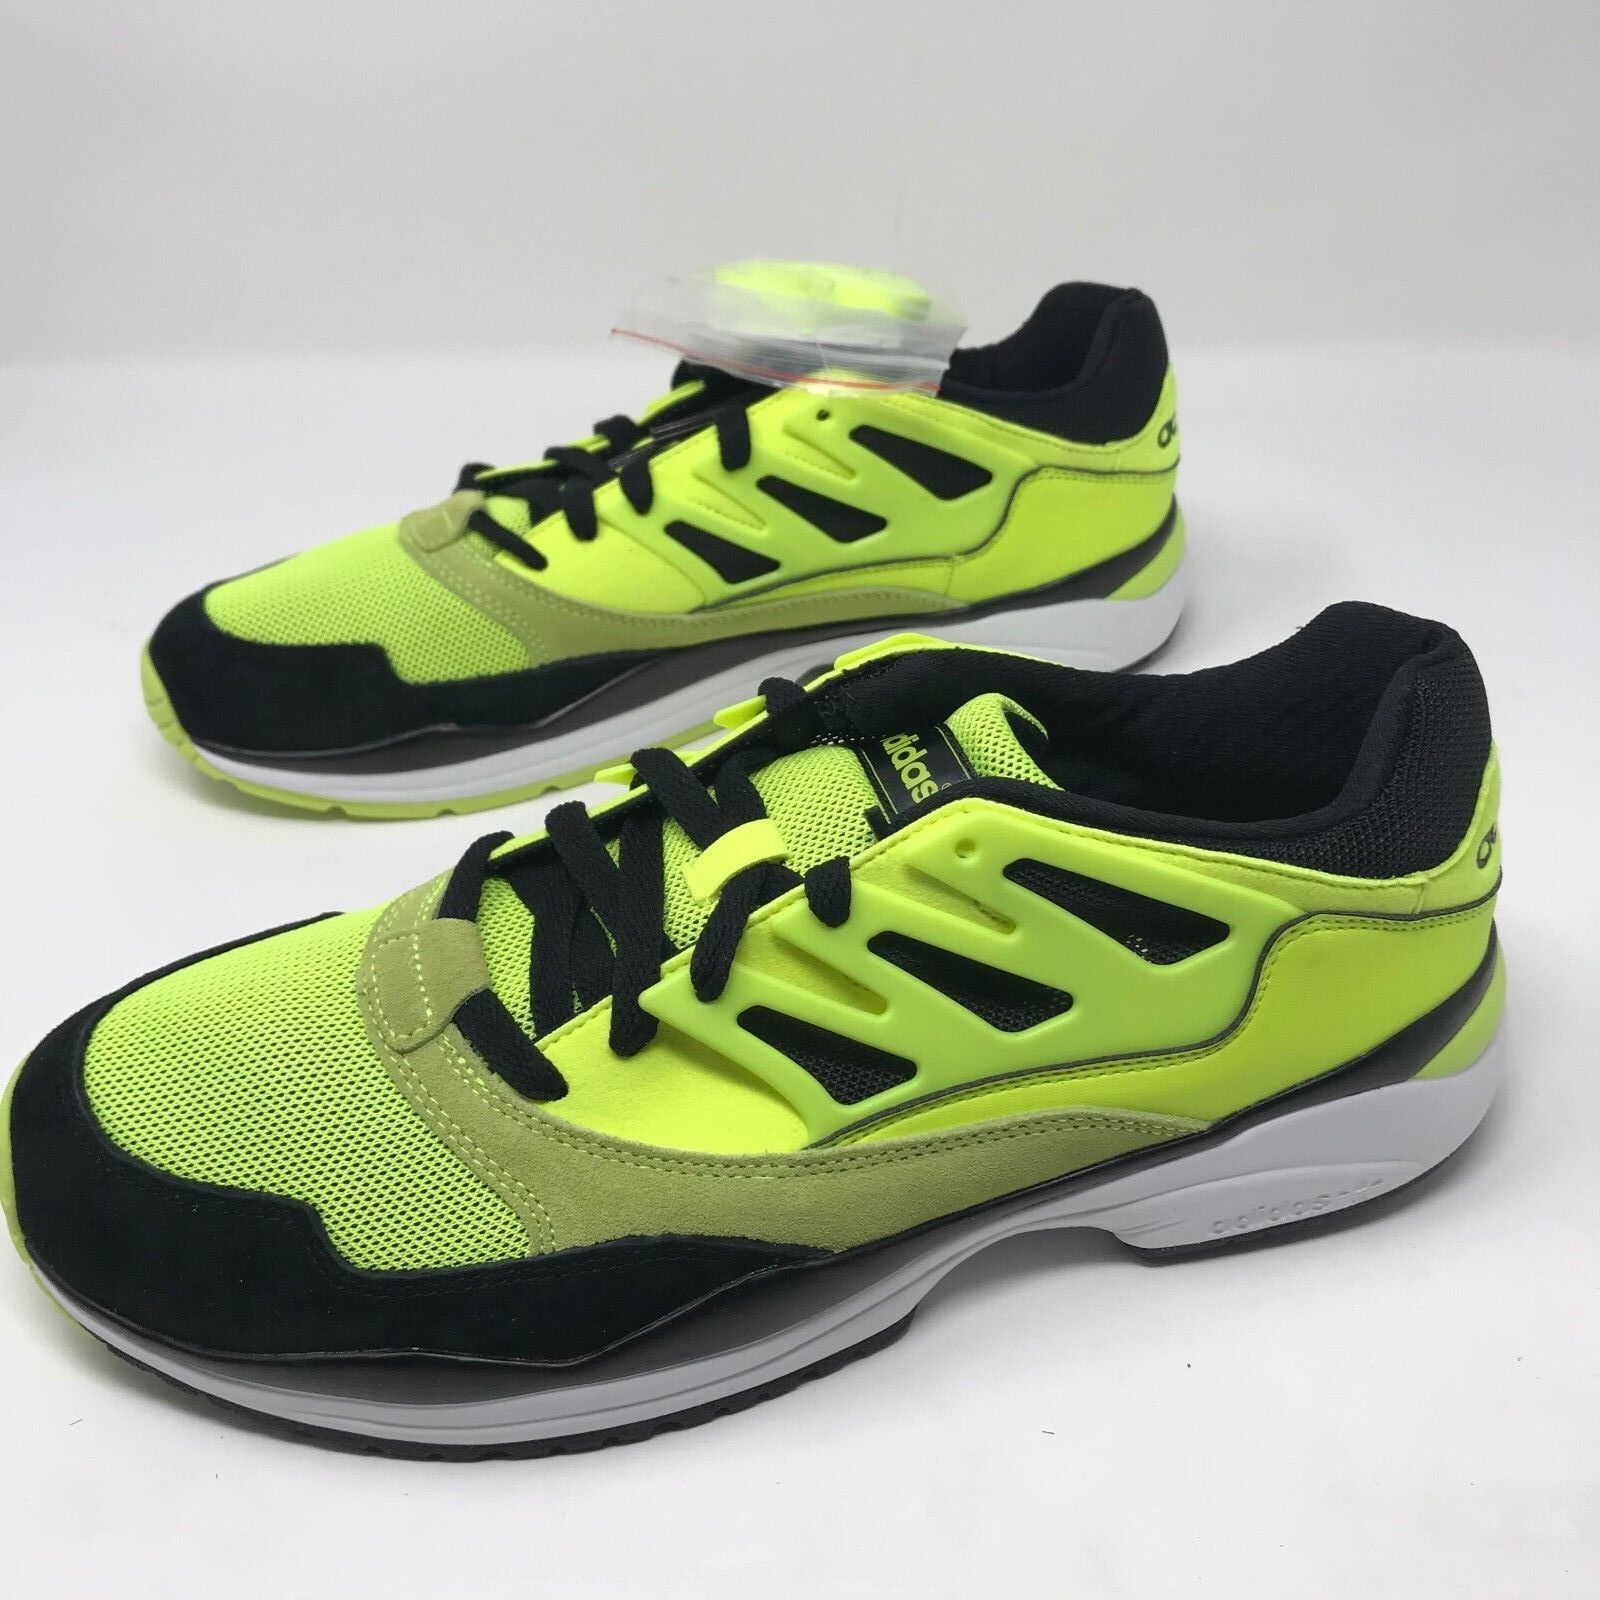 New Men Adidas Torsion Allegra X Q20344 US size 10 New shoes for men and women, limited time discount